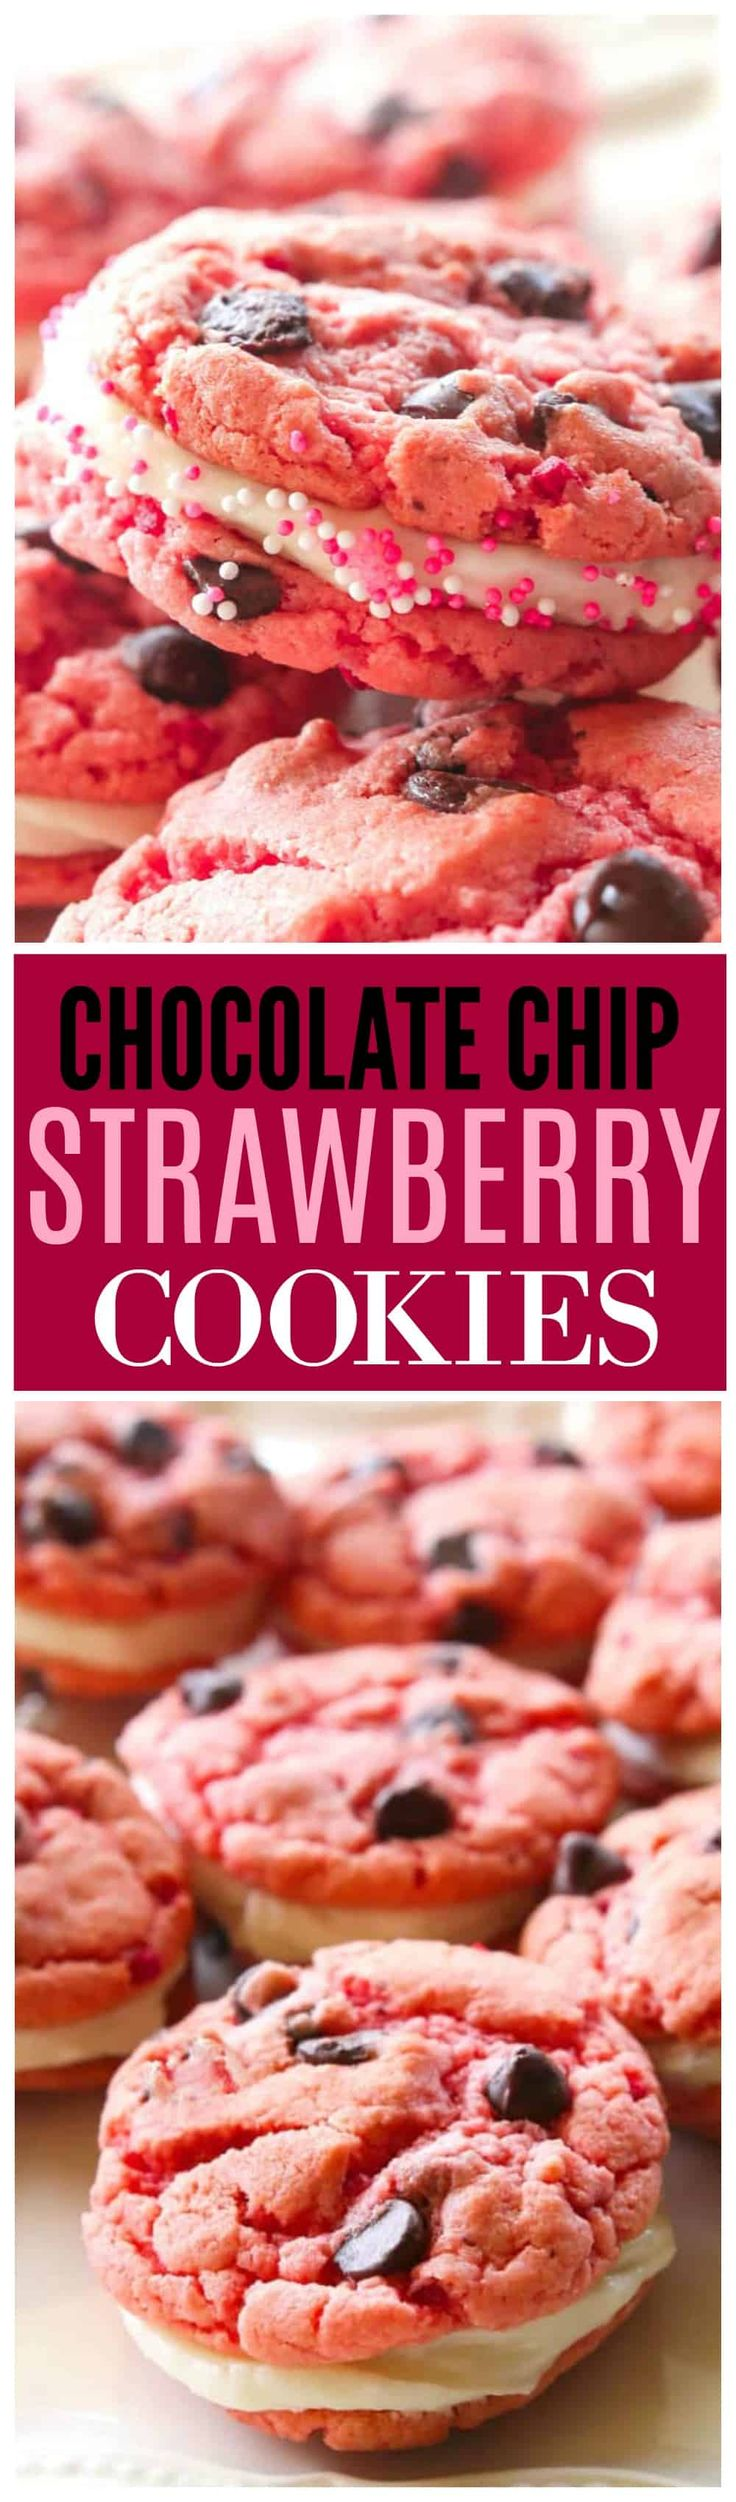 These Strawberry Chocolate Chip Oreos have a bright strawberry flavor with dots of chocolate throughout that are reminiscent of a chocolate covered strawberry. The center is filled with a cream cheese frosting that makes these cookies a real treat.